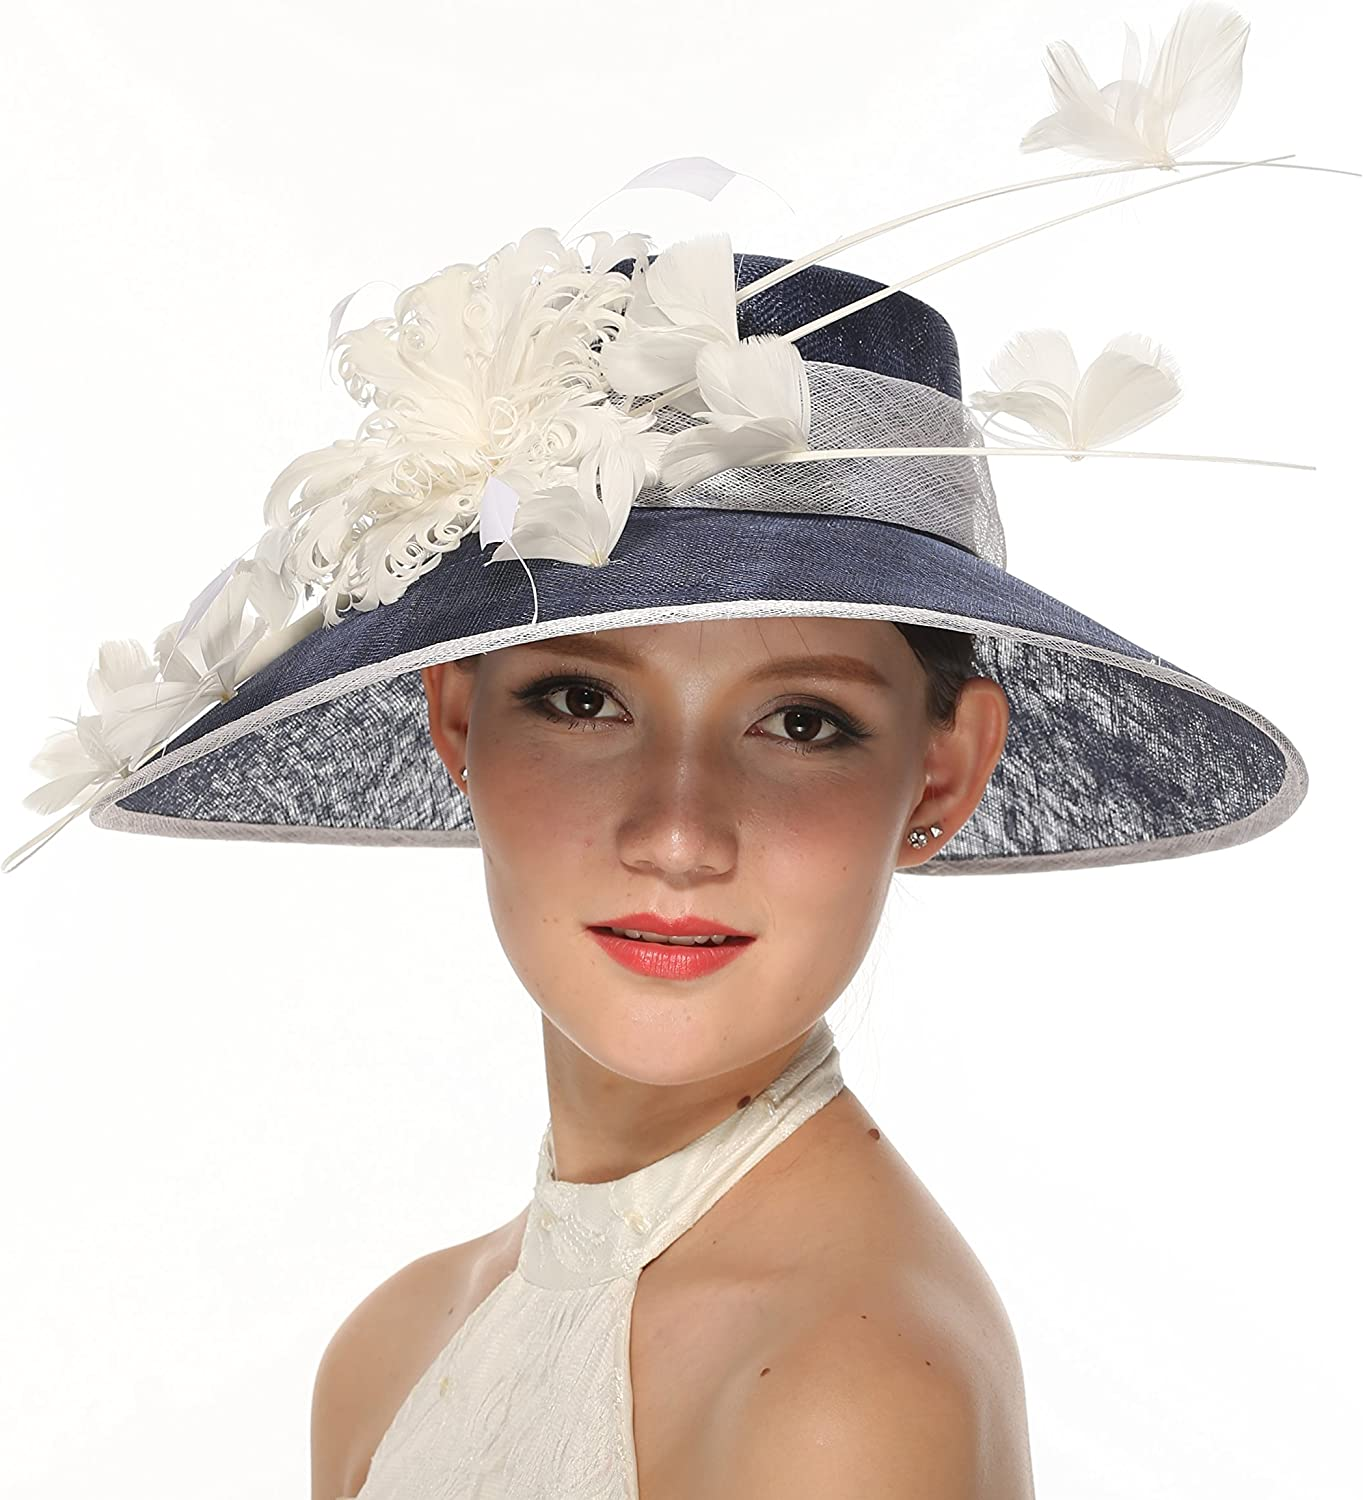 16  Wide Brim Sinamay Hat With Feather Flowers For Church,Eastern,kentukey Derby Navy bluee With White